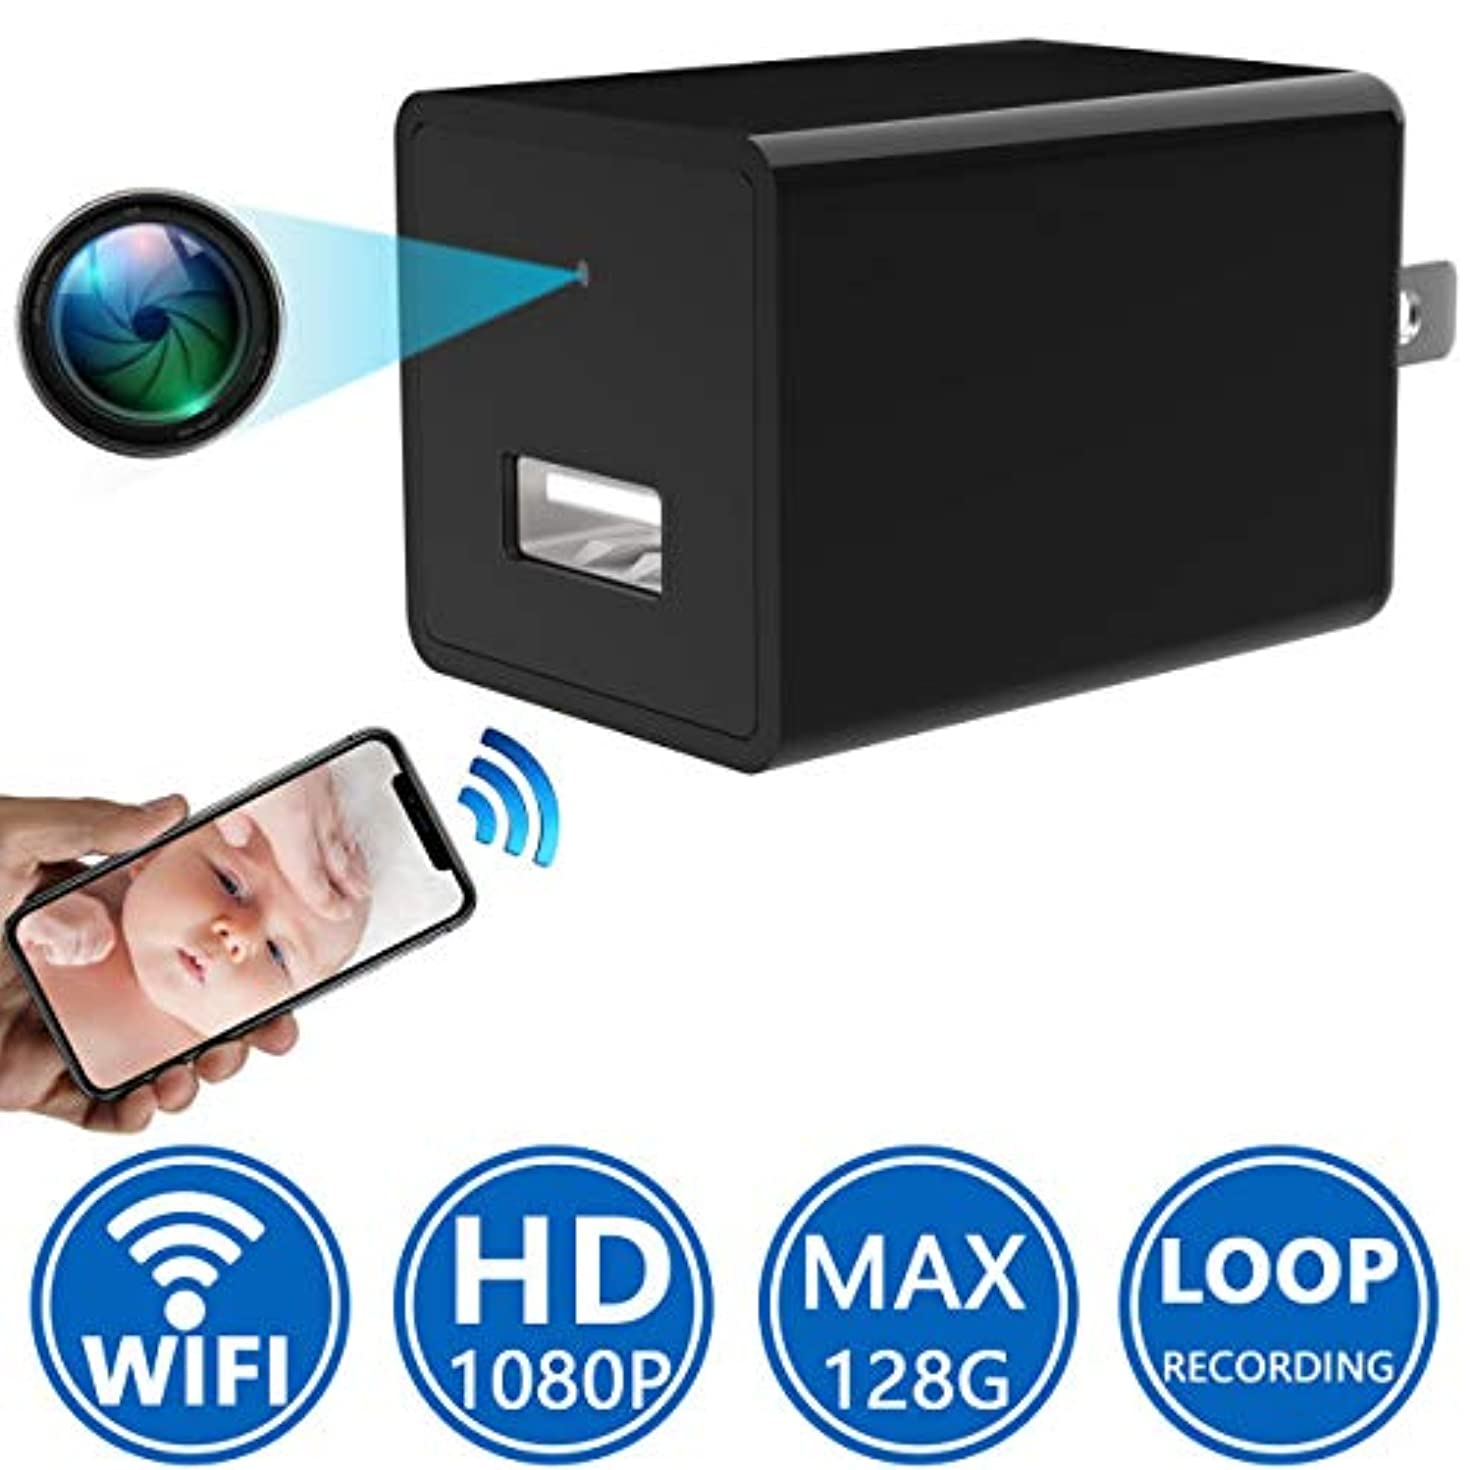 Sunggo Spy Camera Wireless Hidden Wi-Fi Camera,1080P HD Nanny Cameras and Hidden Cameras, USB Spy Camera, Best Hidden Cameras for Home Motion Activated/Night Vision, Support iOS/Android/PC